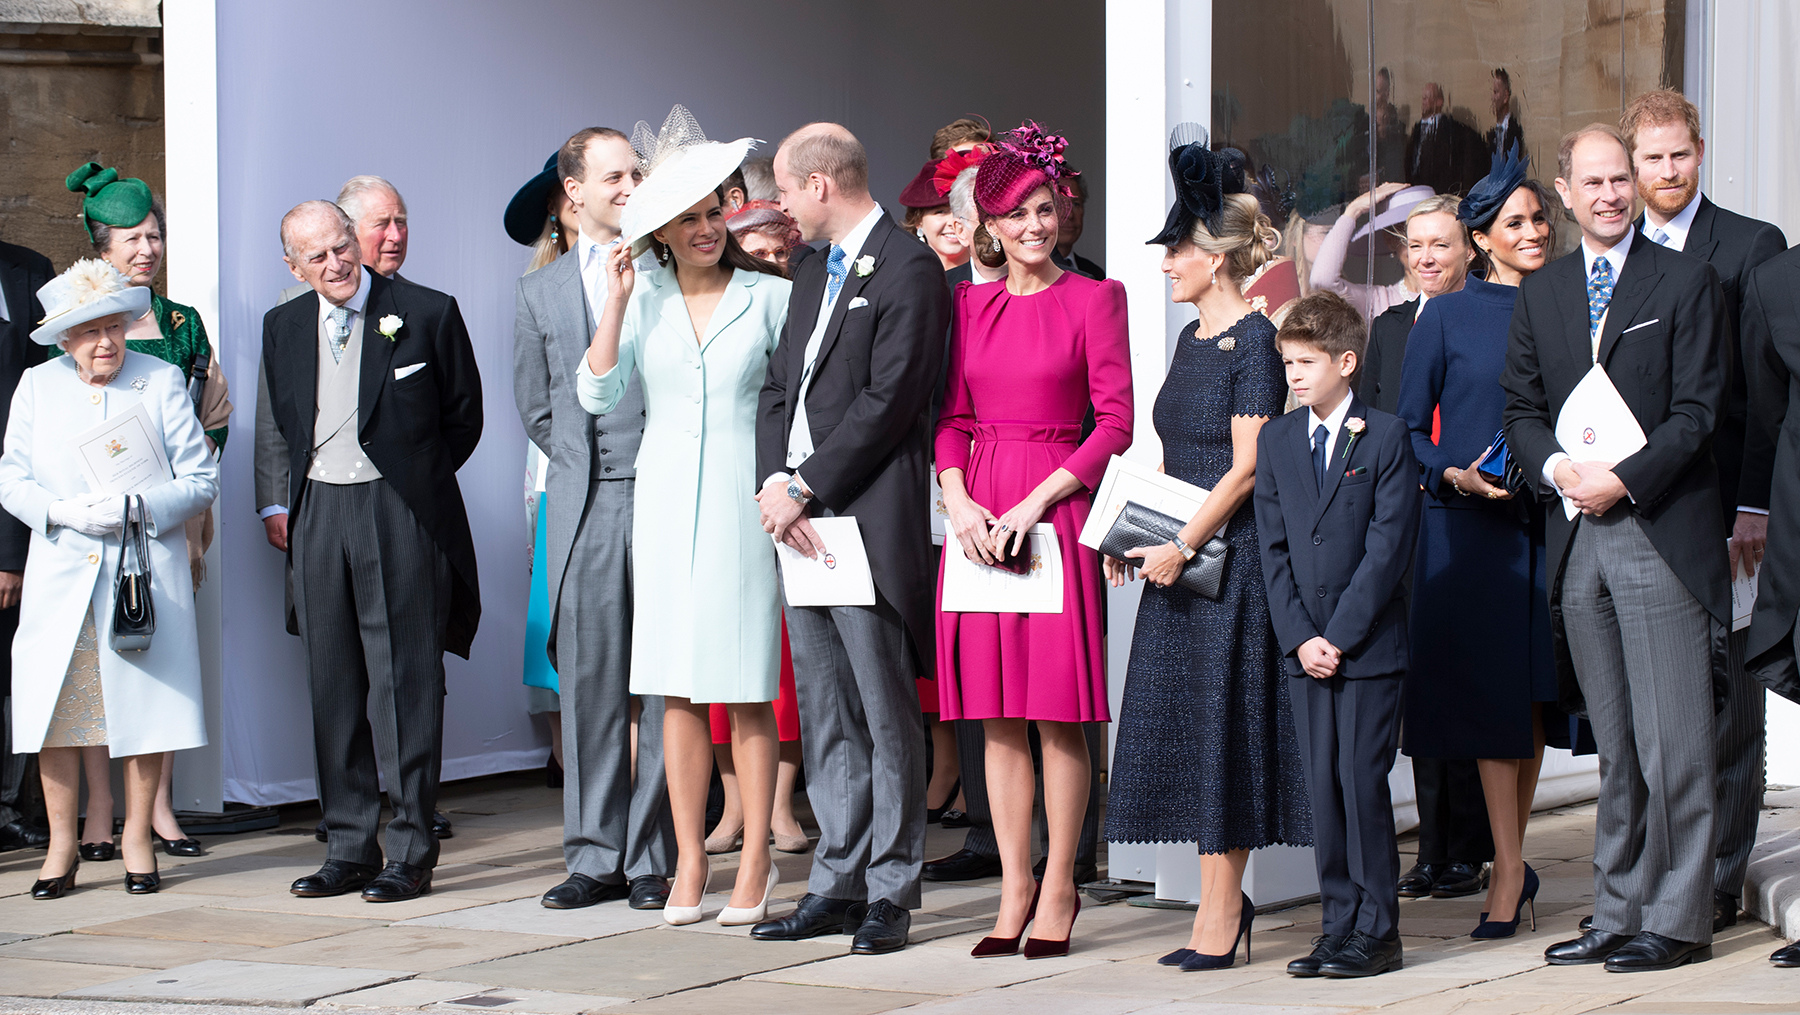 f2425c42b5519 Kate Middleton and Royal Family attend the wedding of Princess Eugenie